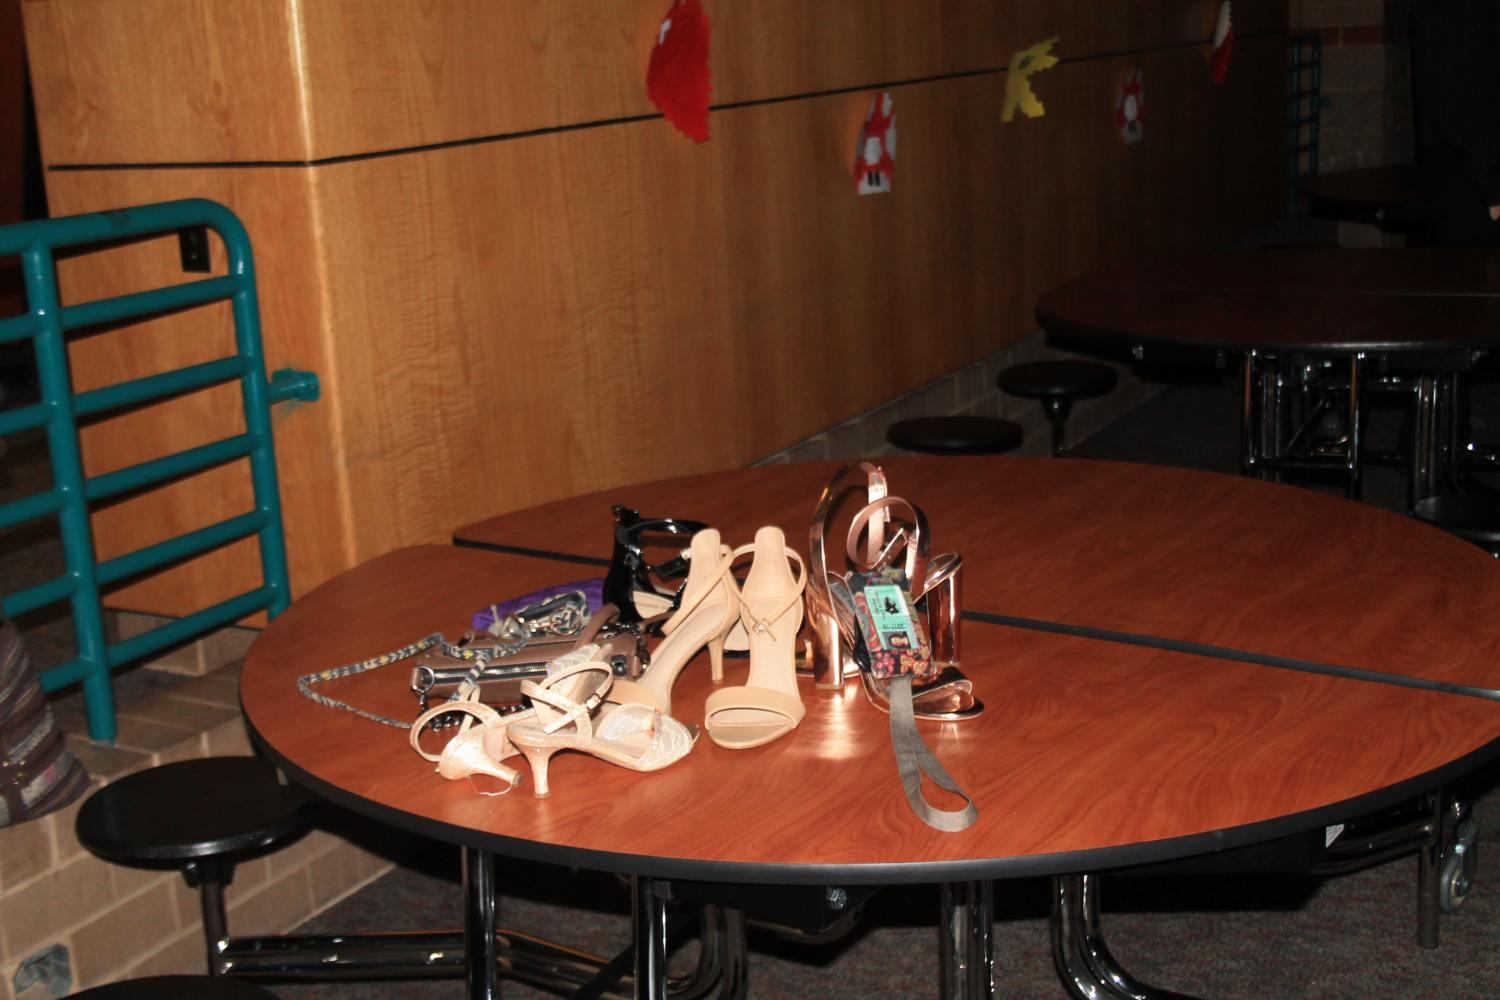 Heels, accessories, and IDs left on a table.